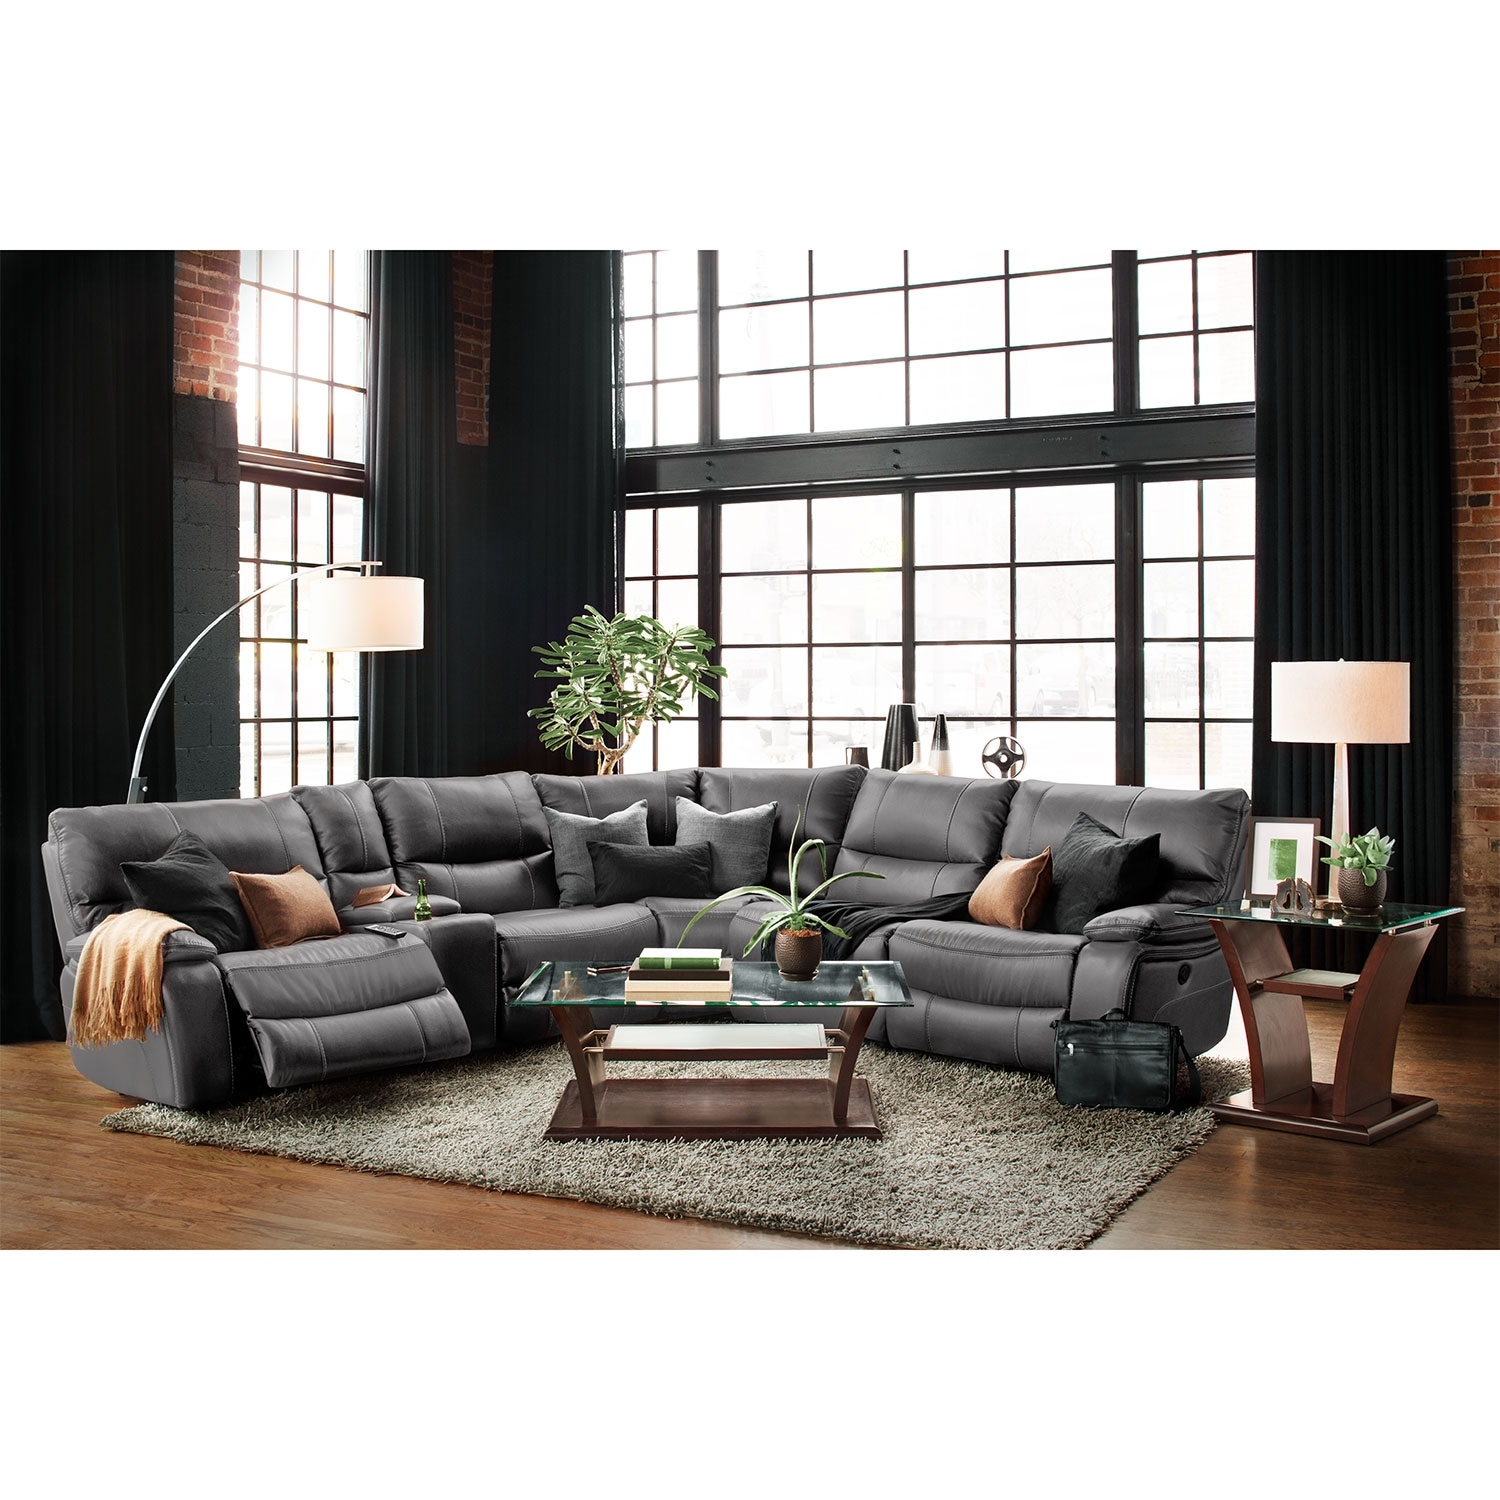 orlando 6 piece power reclining sectional with 2 stationary chairs gray value city furniture. Black Bedroom Furniture Sets. Home Design Ideas